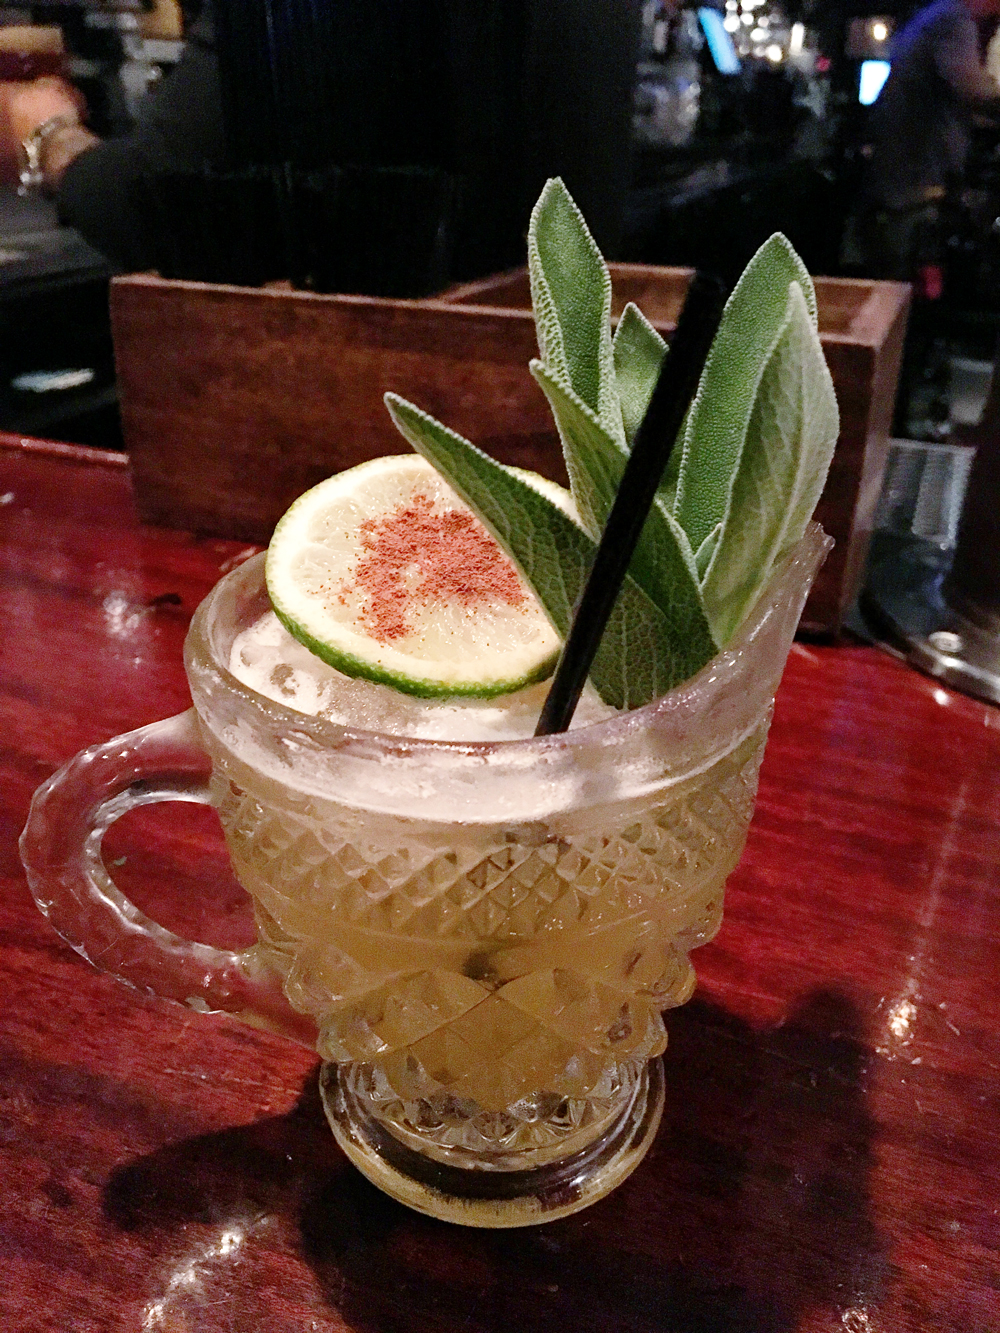 Coral Gables Food Tour May 2016 The Local Caribbean Vieux cocktail